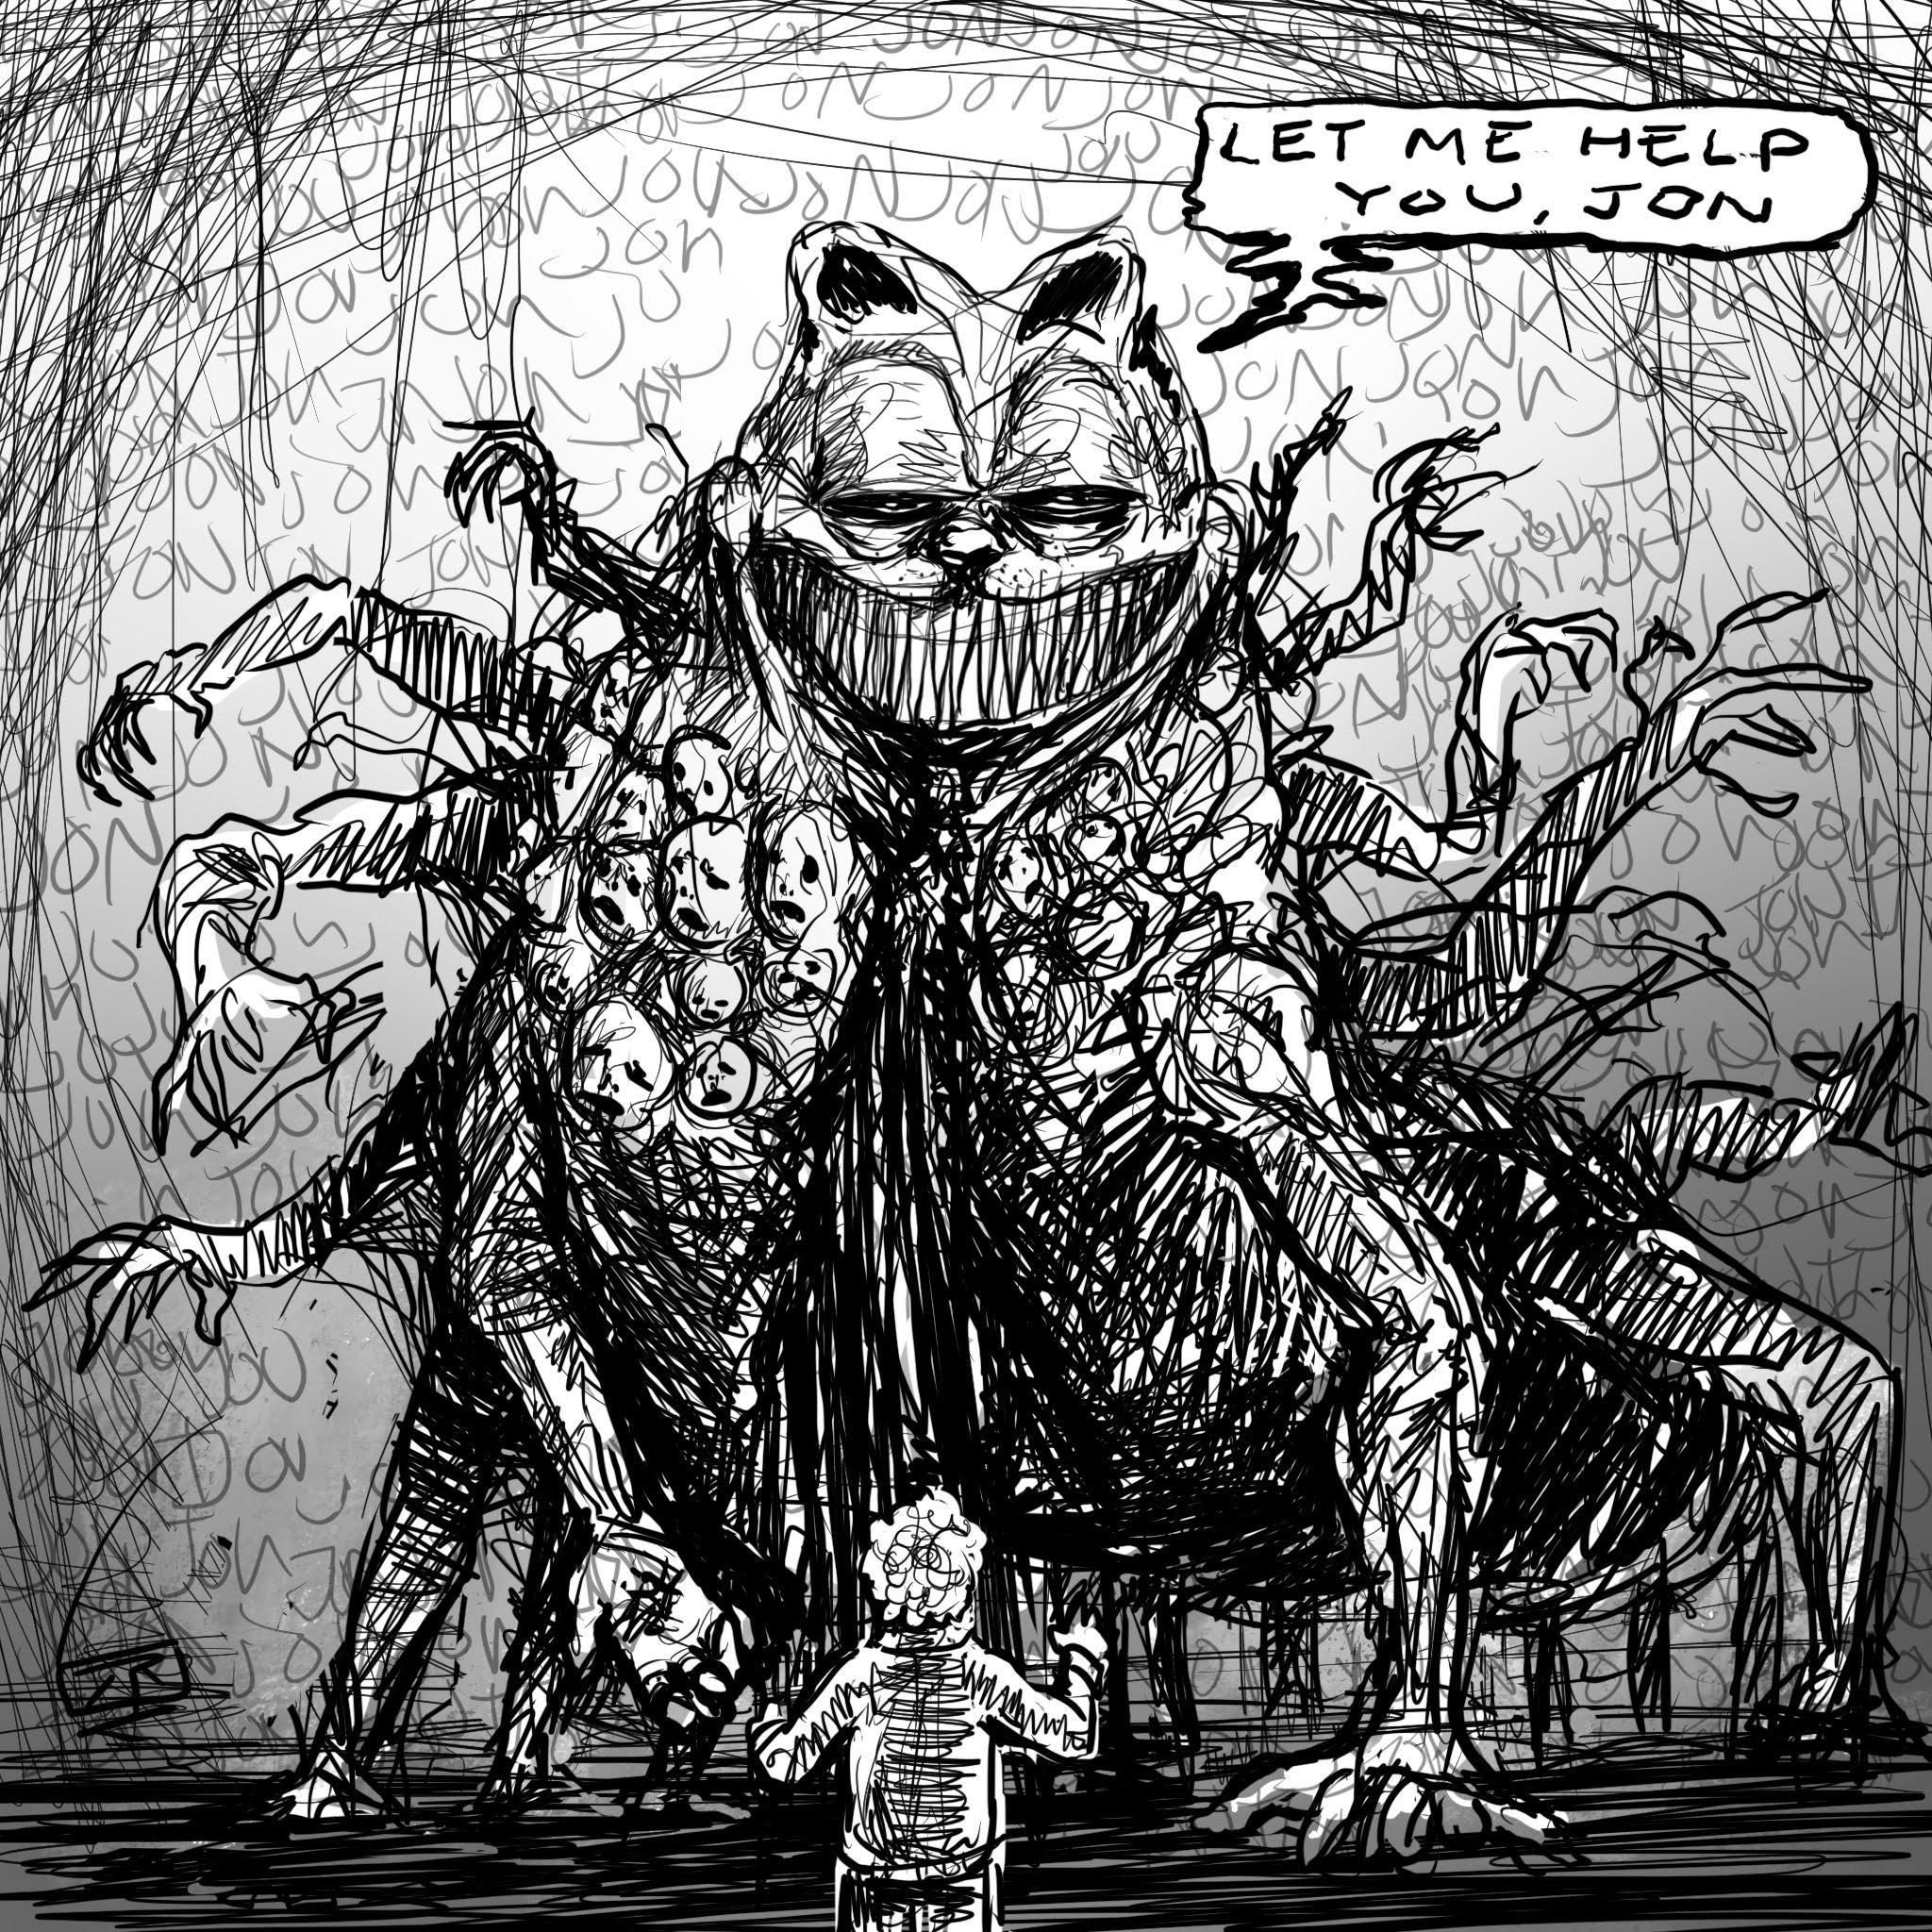 Give Me Your Hand By Rojom Creepy Garfield In 2020 Scary Art Creepy Art Lovecraftian Horror